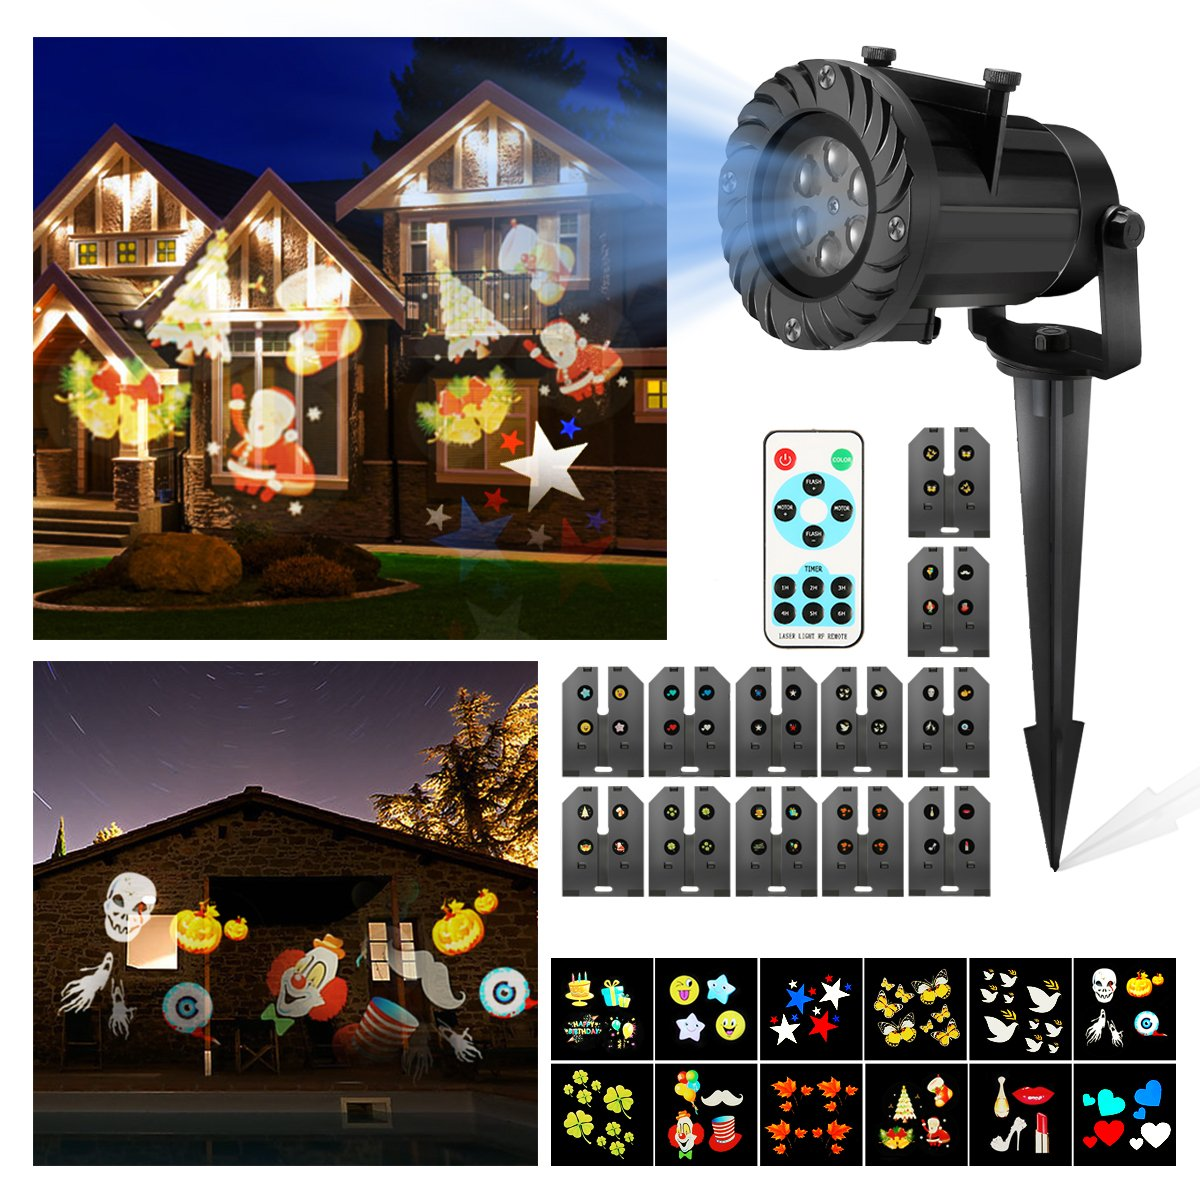 Christmas Projector Lights,CAMTOA 12 Pattern LED Light Projector/star shower Projector light - Waterproof with RF Wireless Remote Perfect for Patio Christmas Halloween Holiday,Party Decoration